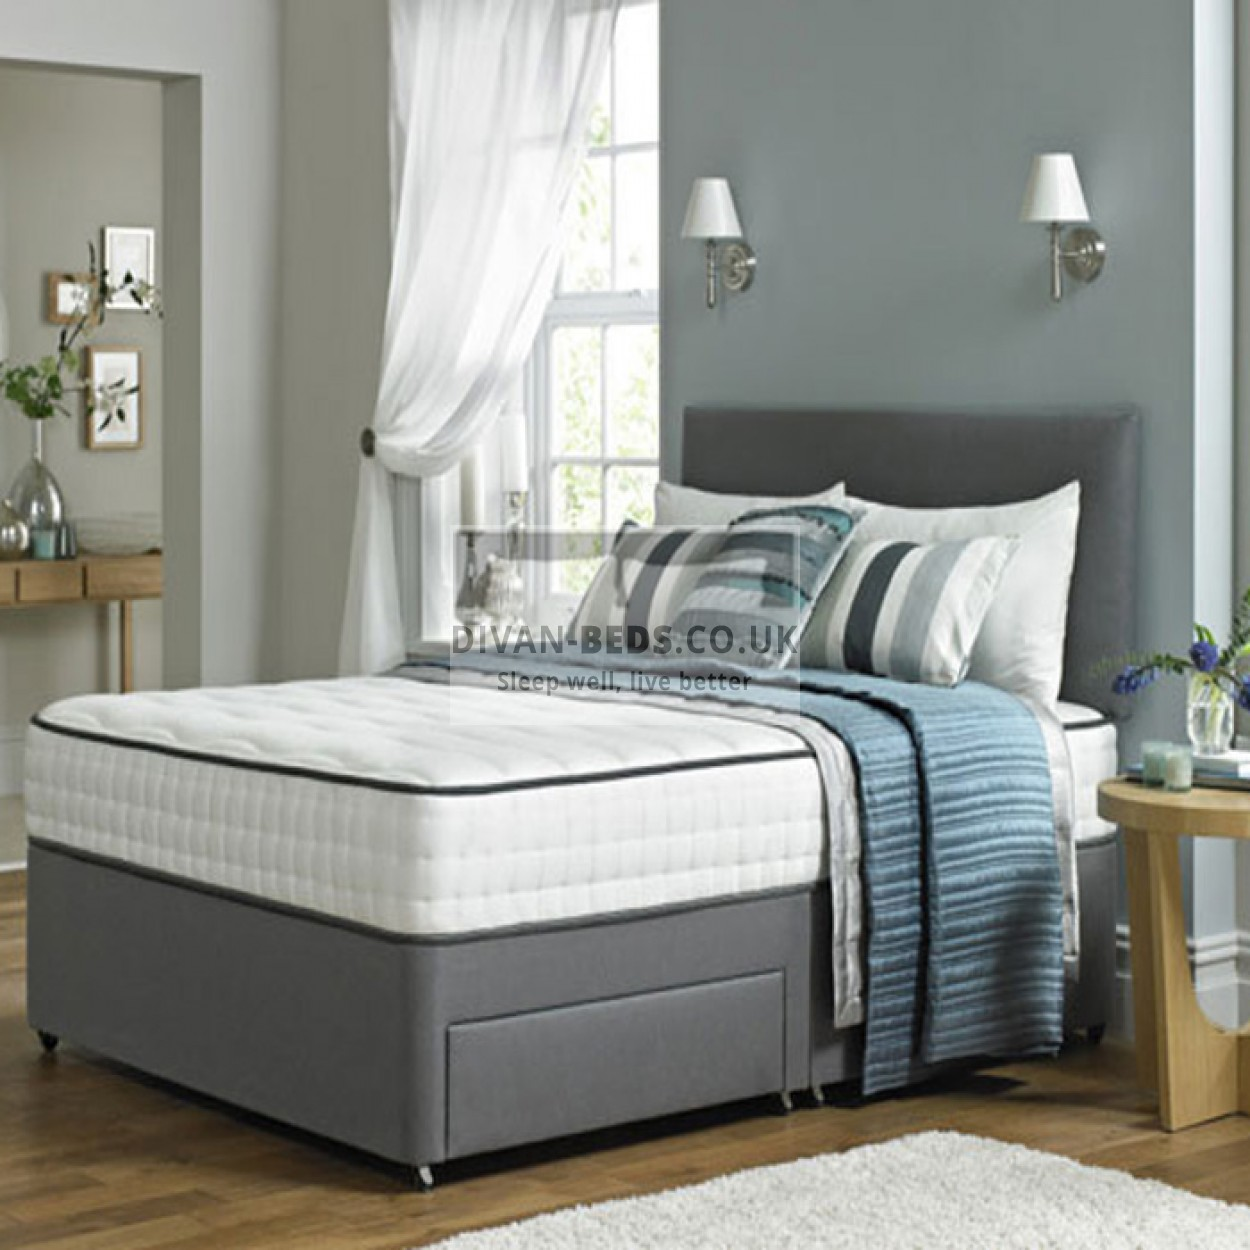 lisa leather divan bed with spring memory foam mattress divan